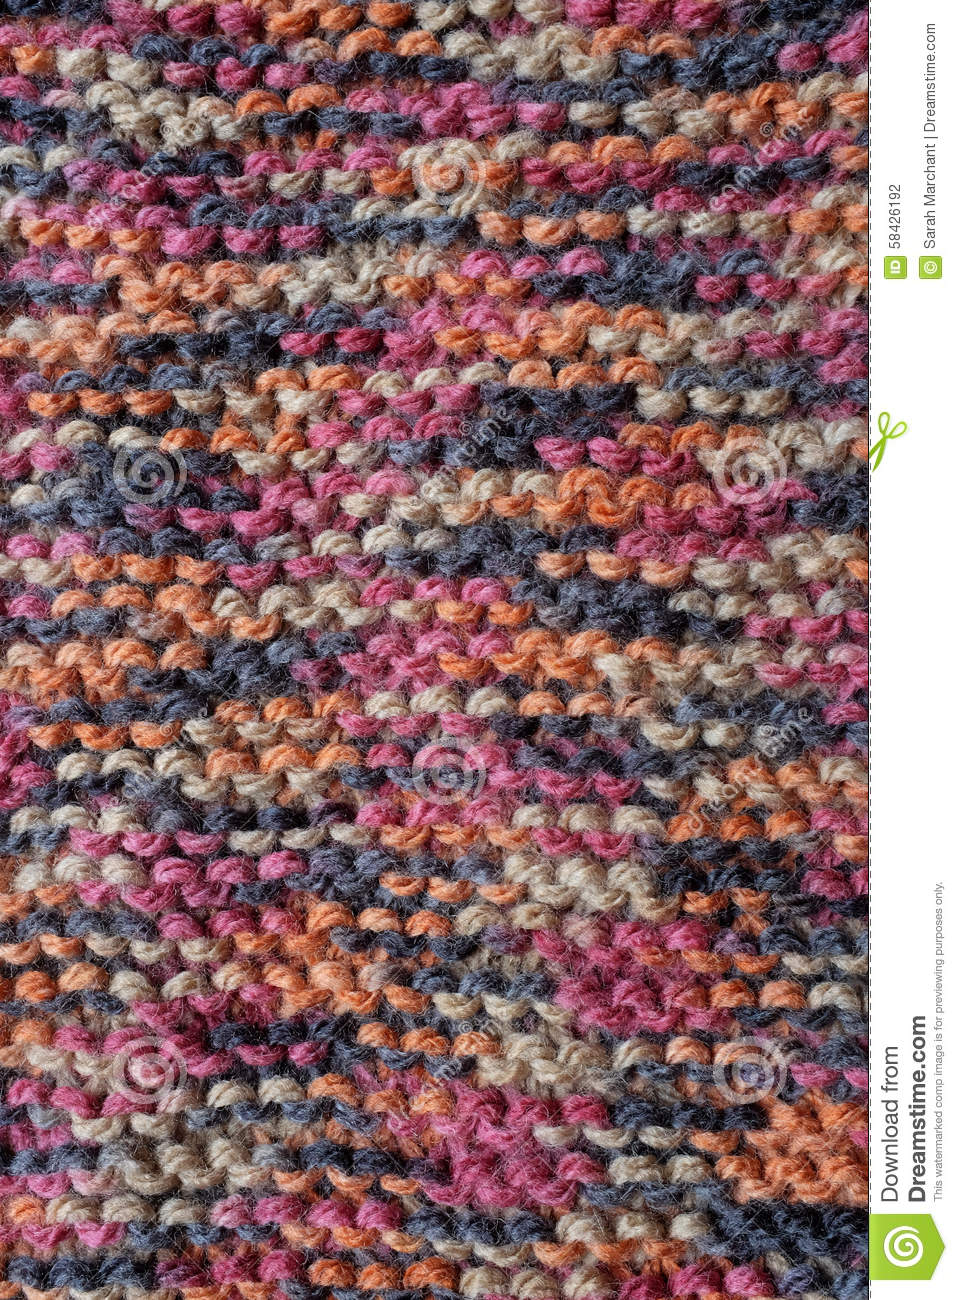 Length Of Knitting In Multi-coloured Yarn Stock Photo - Image: 58426192